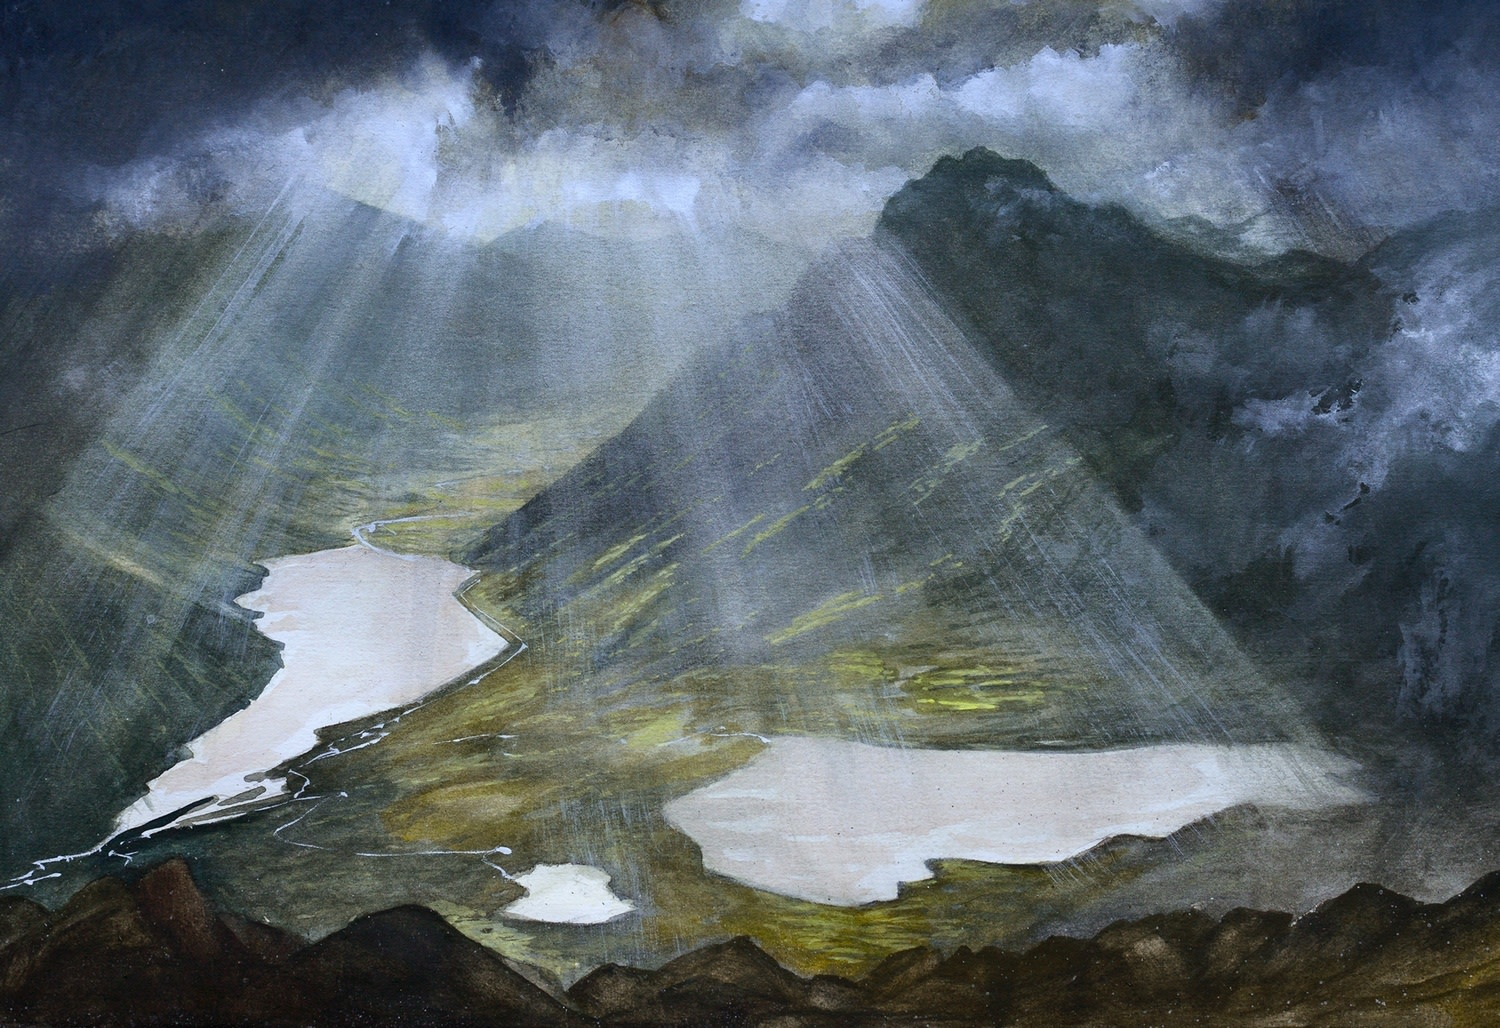 """<span class=""""link fancybox-details-link""""><a href=""""/exhibitions/36/works/image_standalone4848/"""">View Detail Page</a></span><p>Gary Groucutt</p><p><em>Sun Rays over Tryfan</em></p><p>watercolour & gouache</p><p>£475</p>"""